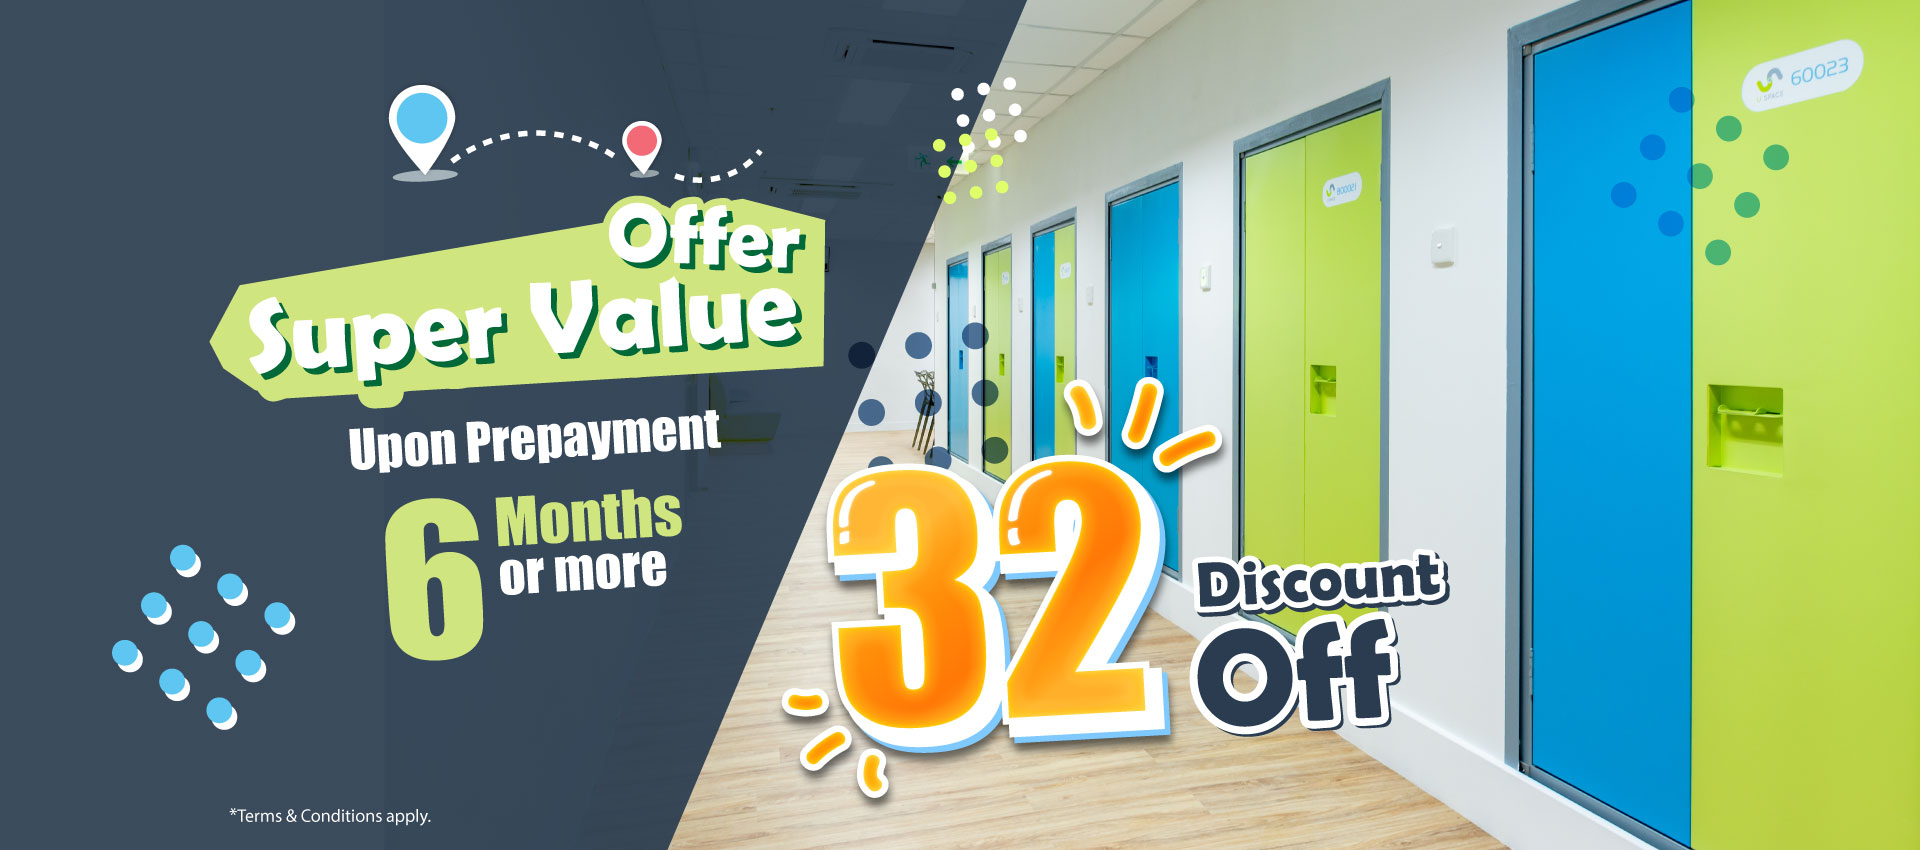 """Super Value Offer"" of 32% off discount upon a prepayment of 6 months or more!"